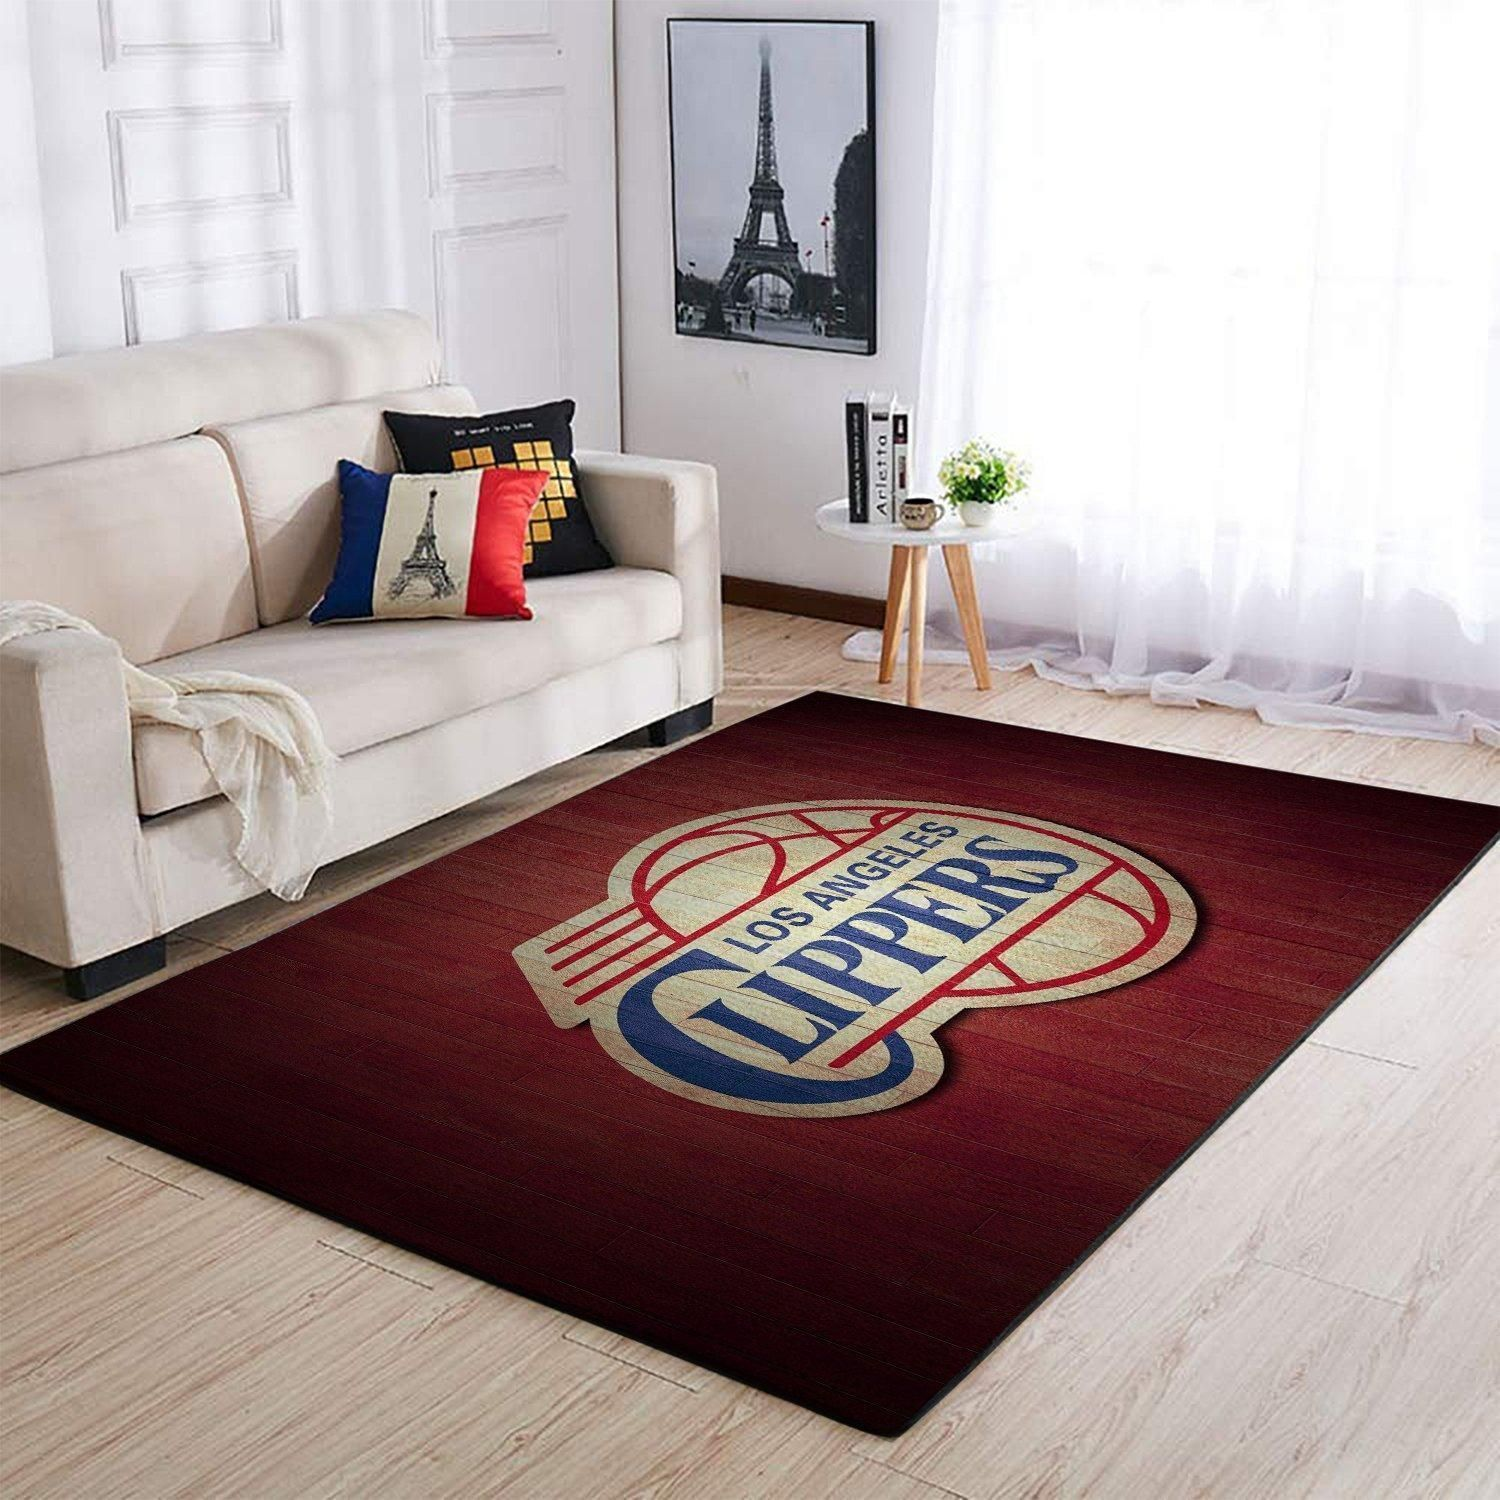 Amazon Los Angeles Clippers Living Room Area No3567 Rug